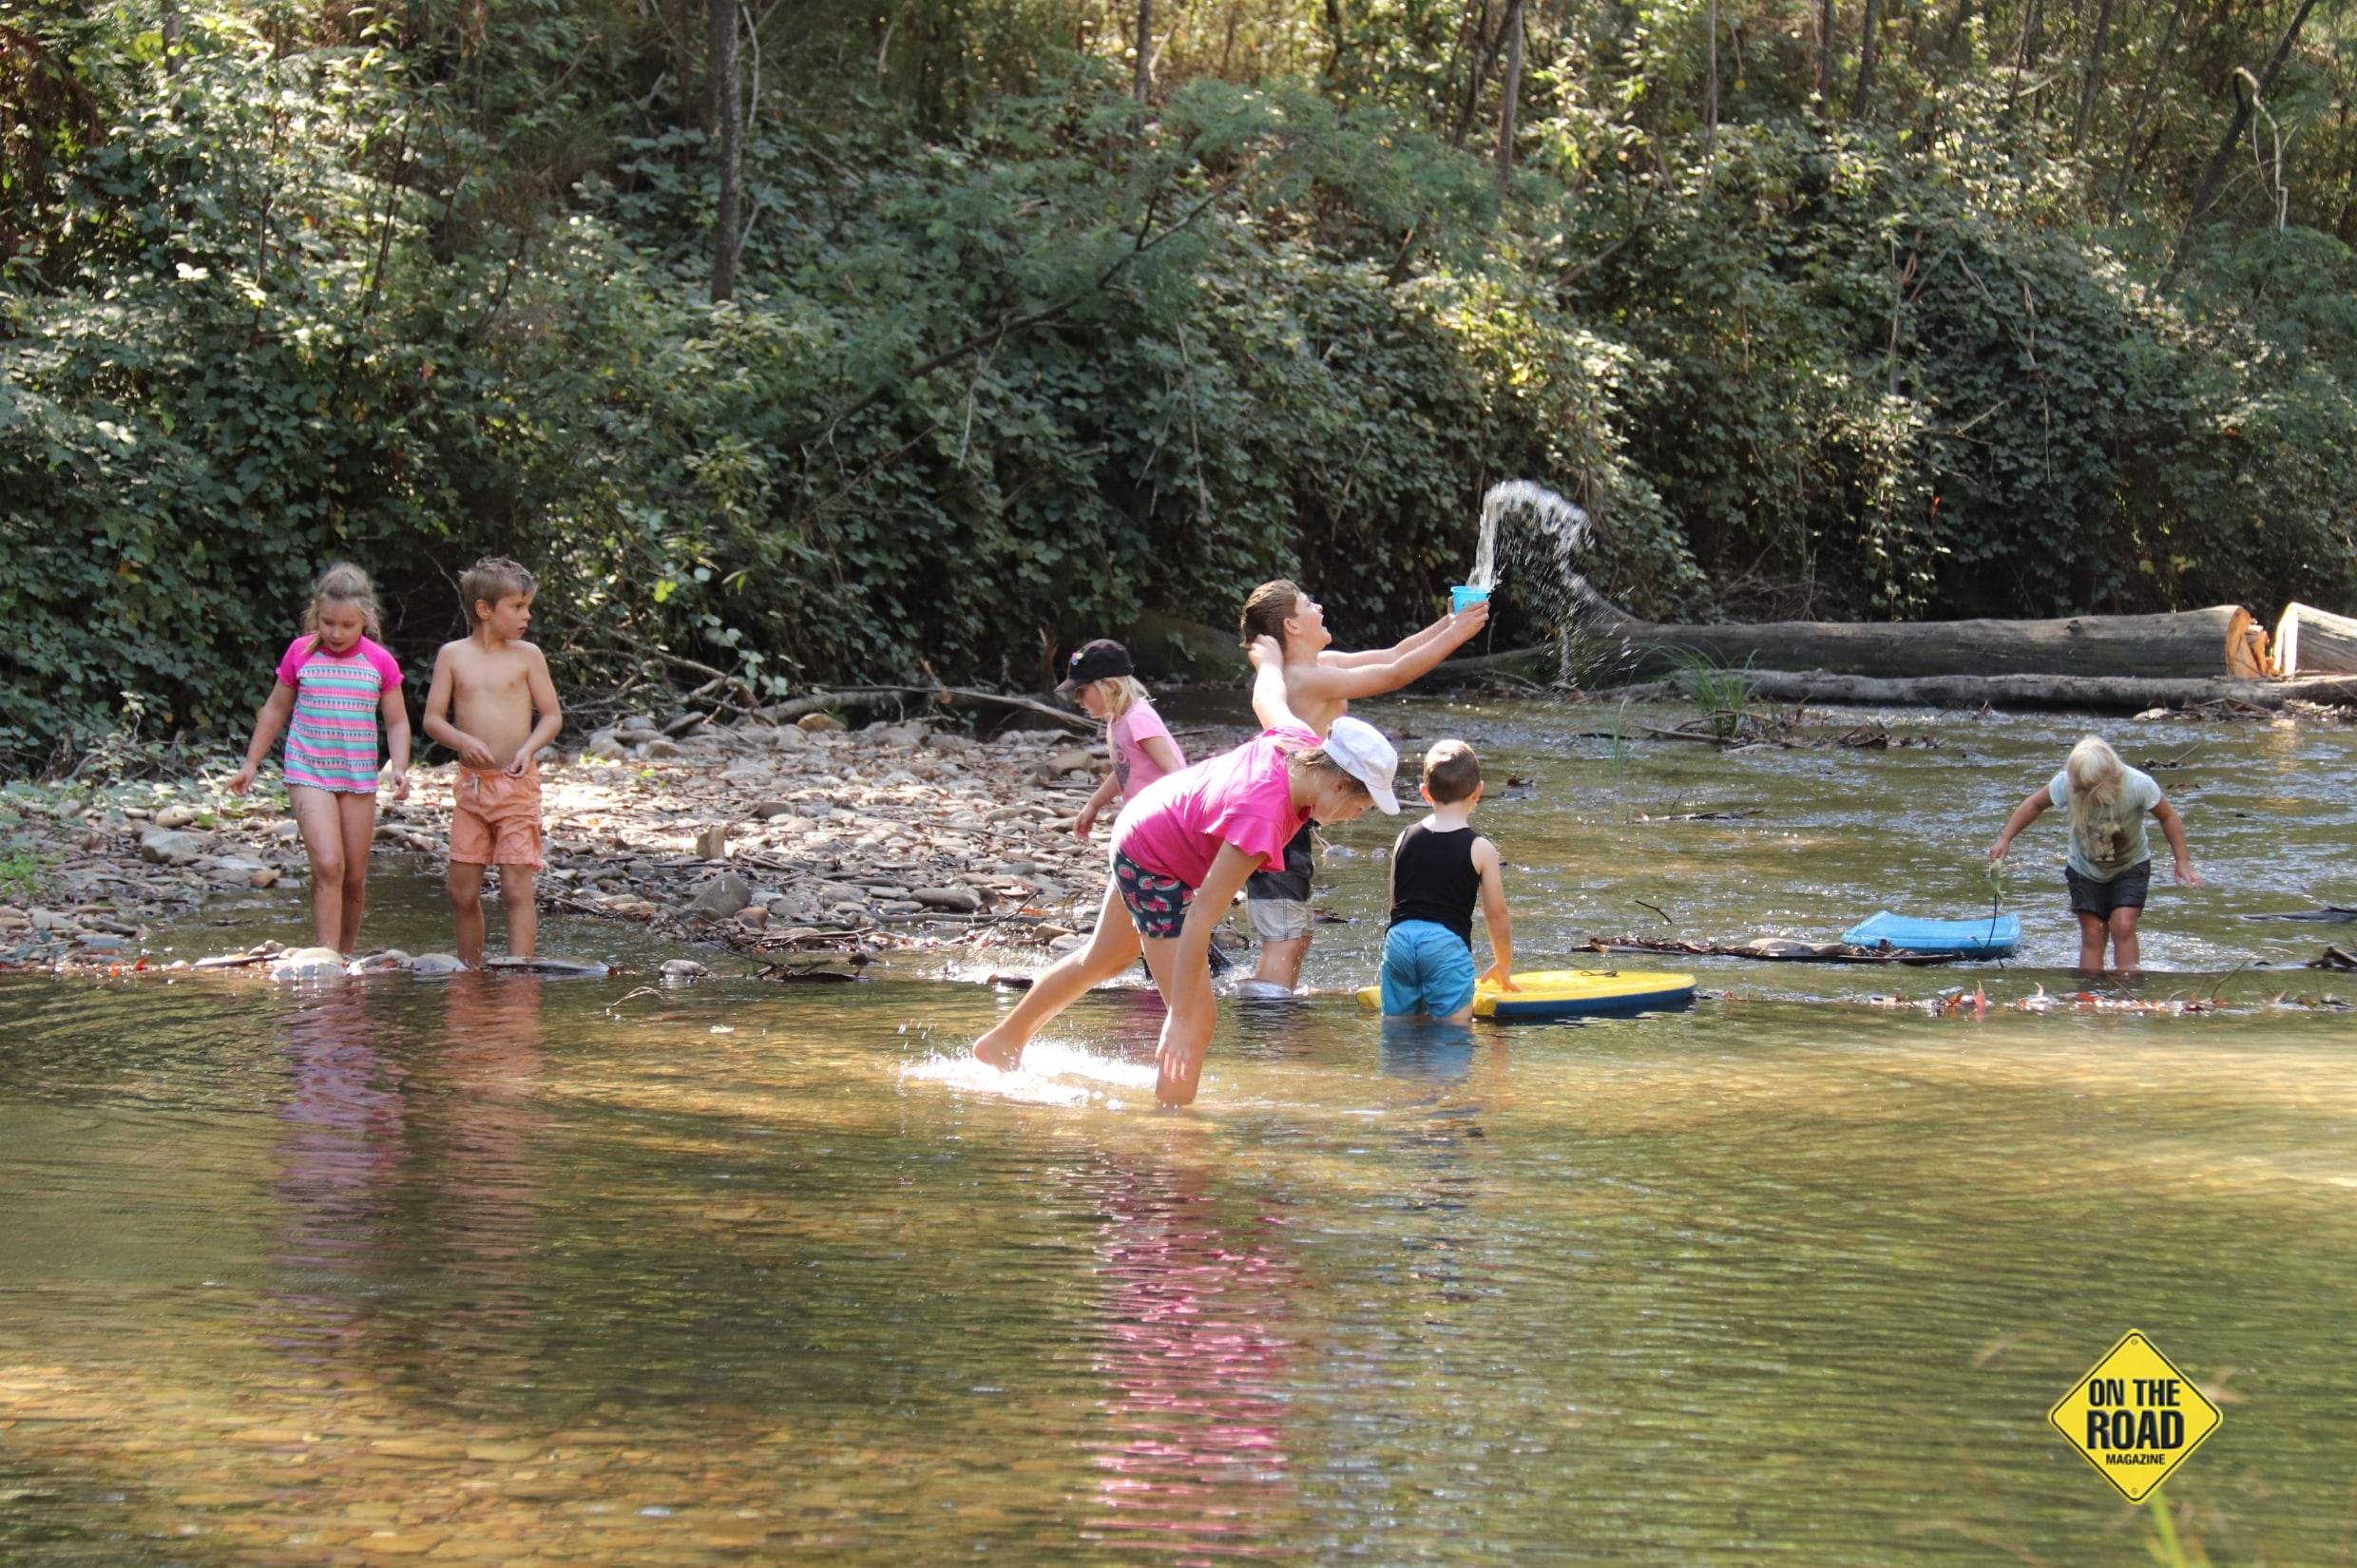 Children swimming and playing at the creek